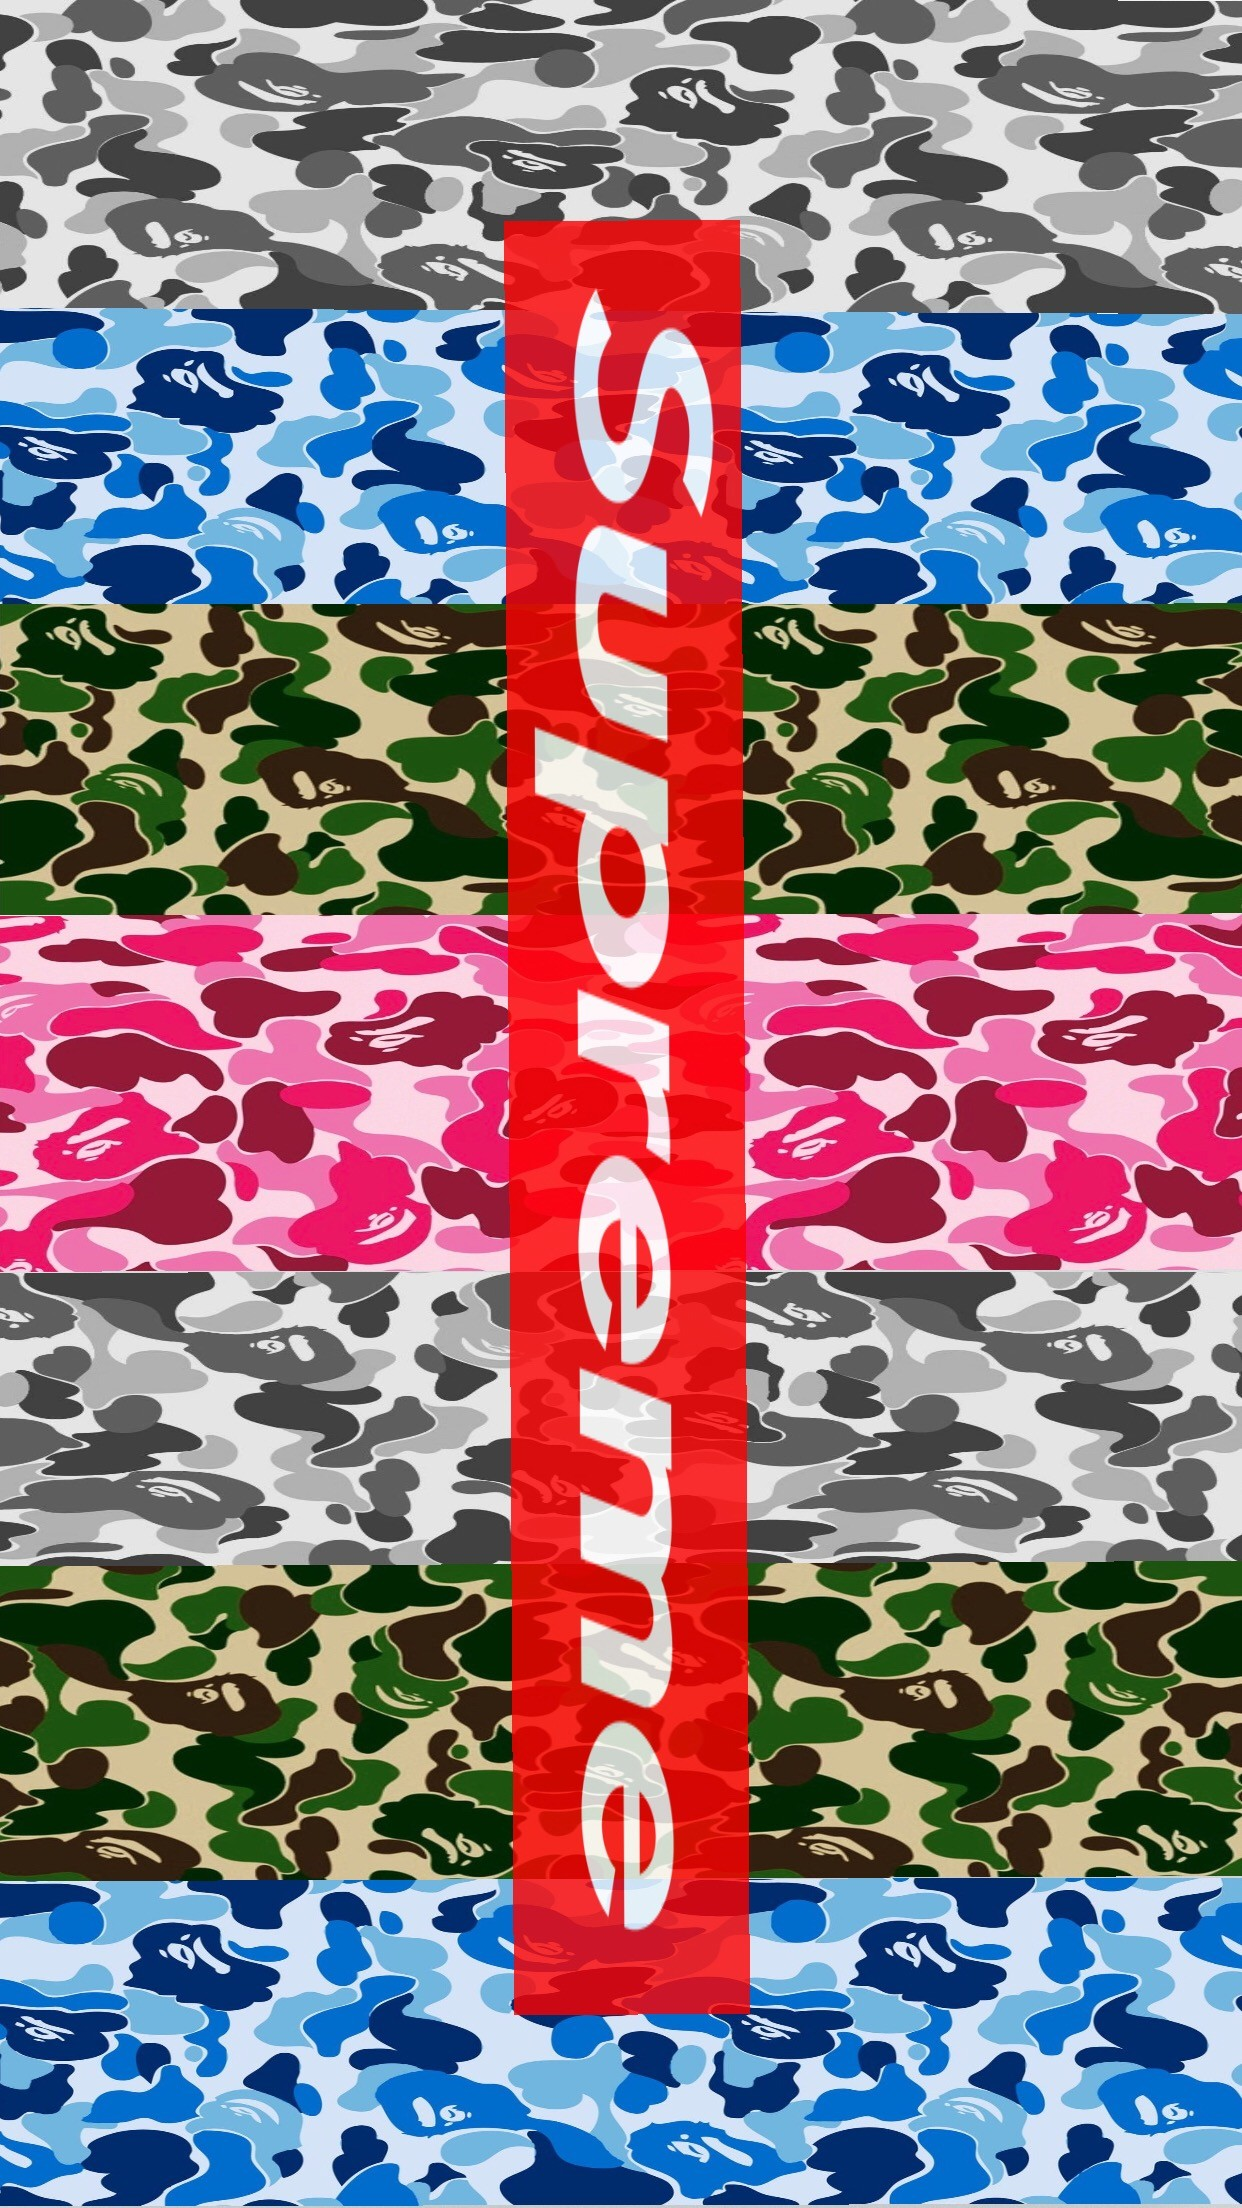 Bape iphone wallpaper 63 images - Hd supreme iphone wallpaper ...